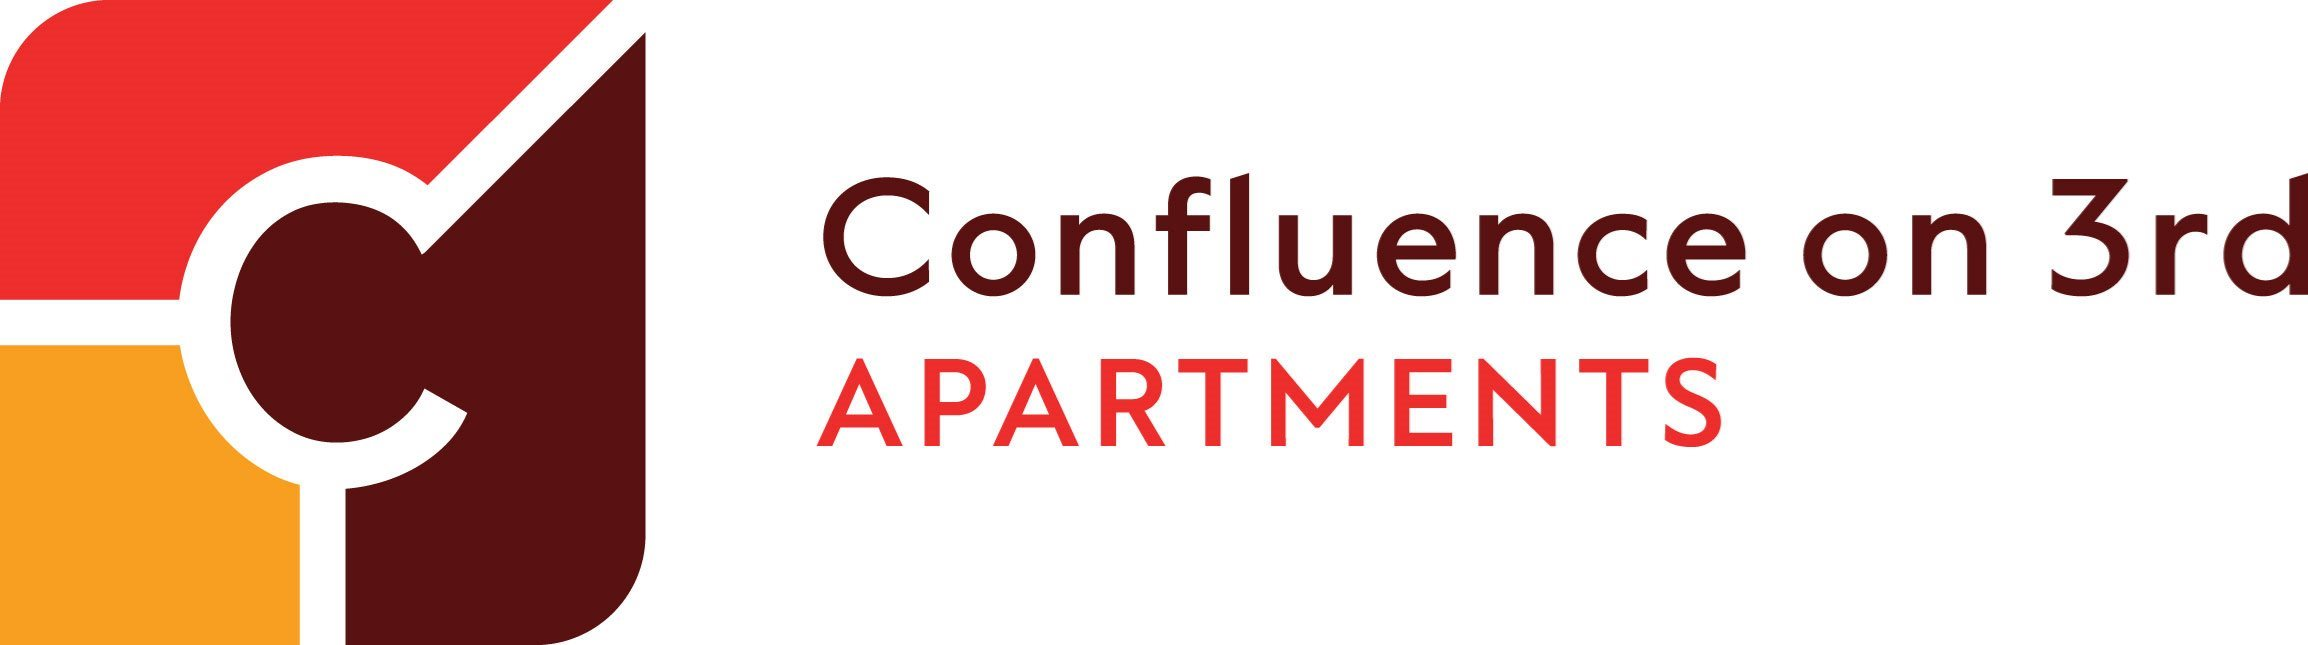 Confluence on 3rd Apartments in Downtown Des Moines Logo